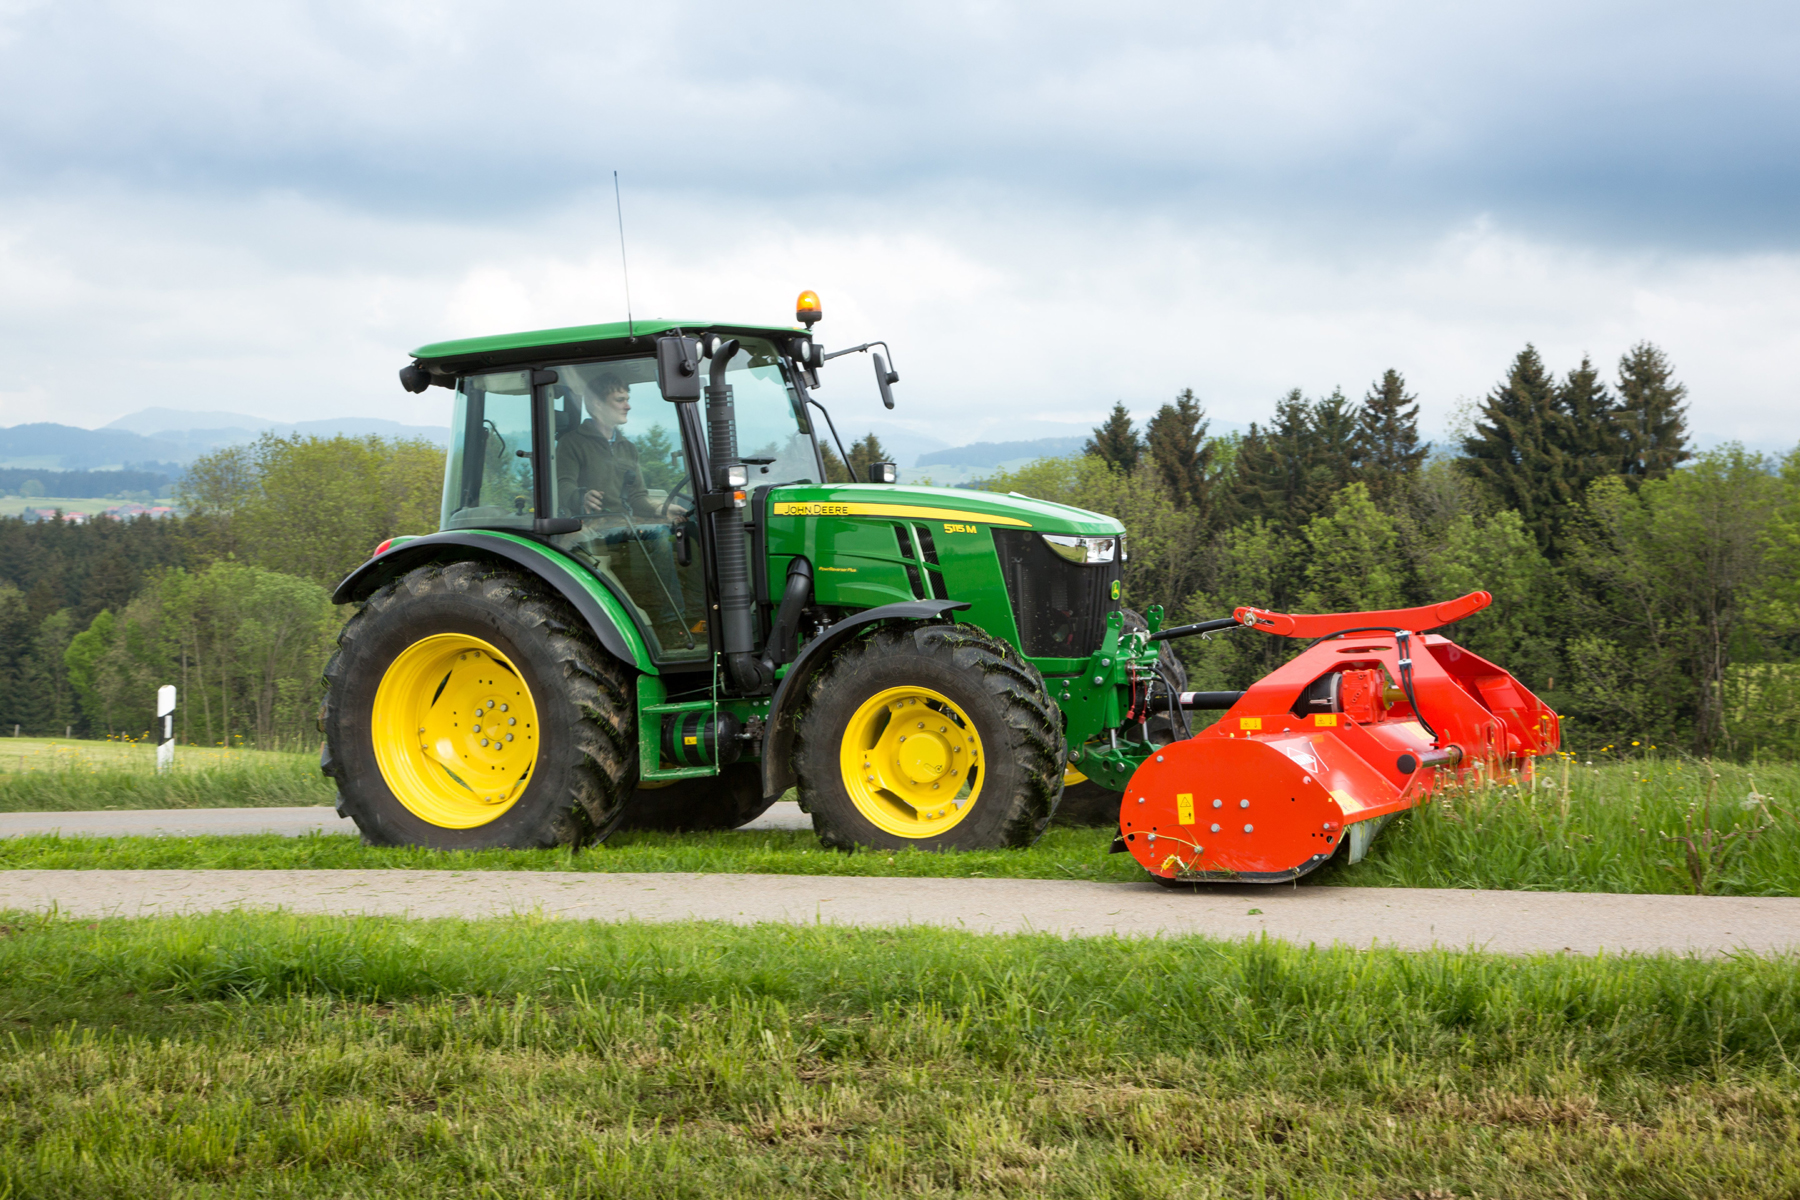 New generation 5M Series tractor from John Deere | Pitchcare